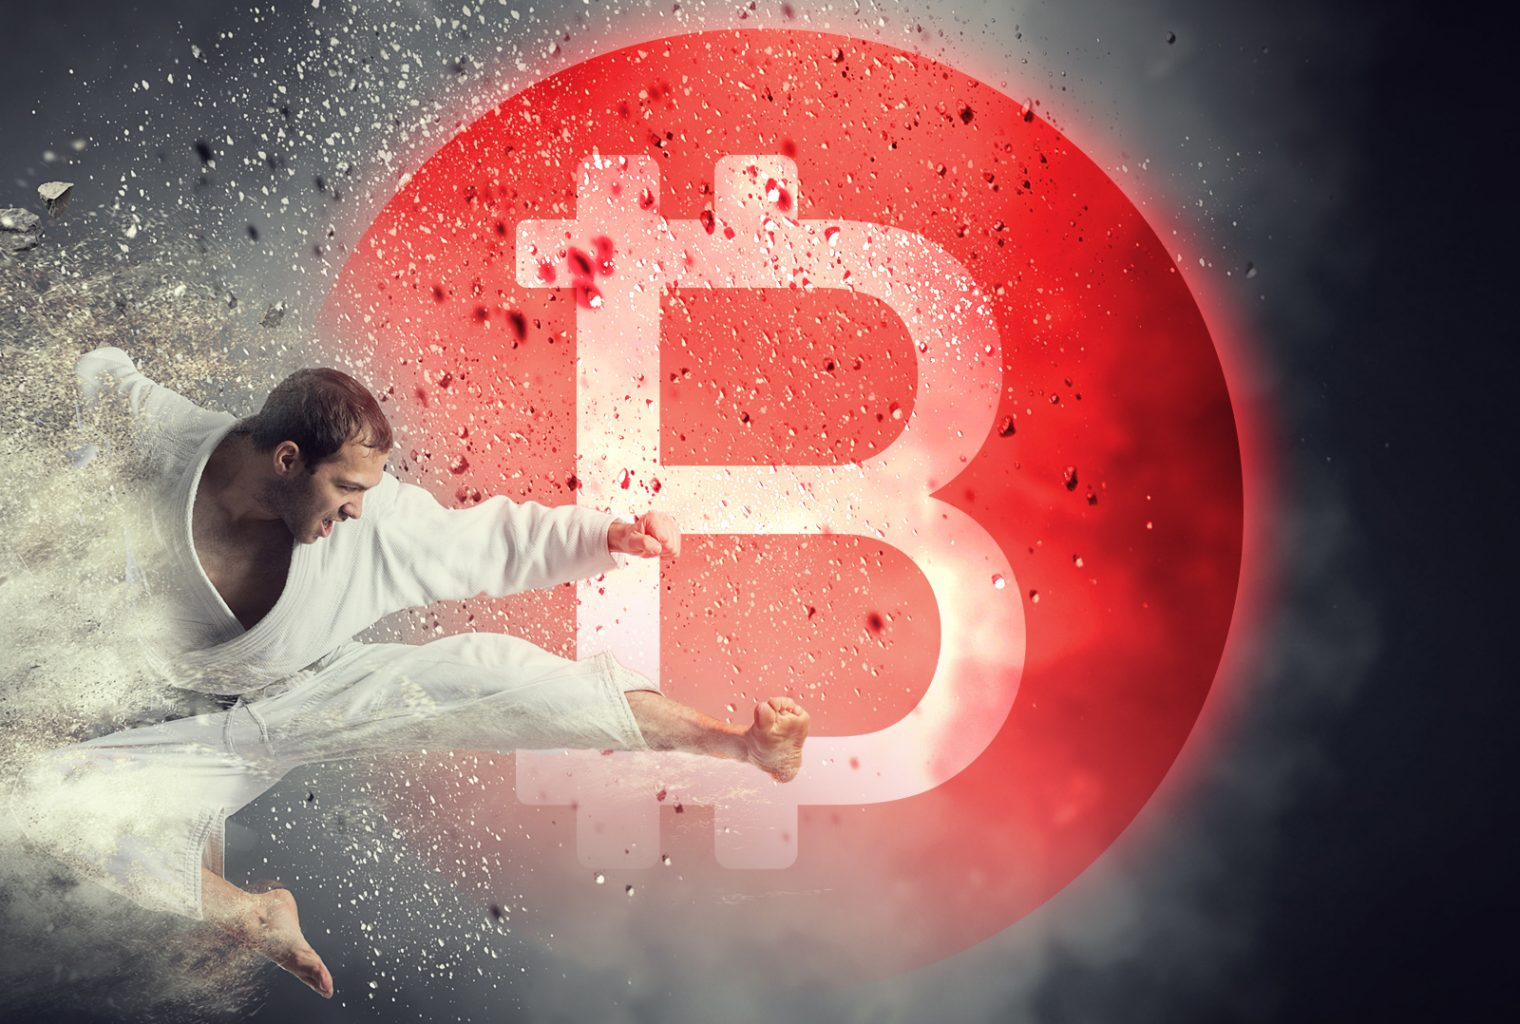 Wendy McElroy: The Jiu-Jitsu of Crypto - Personal Freedom vs Social Change